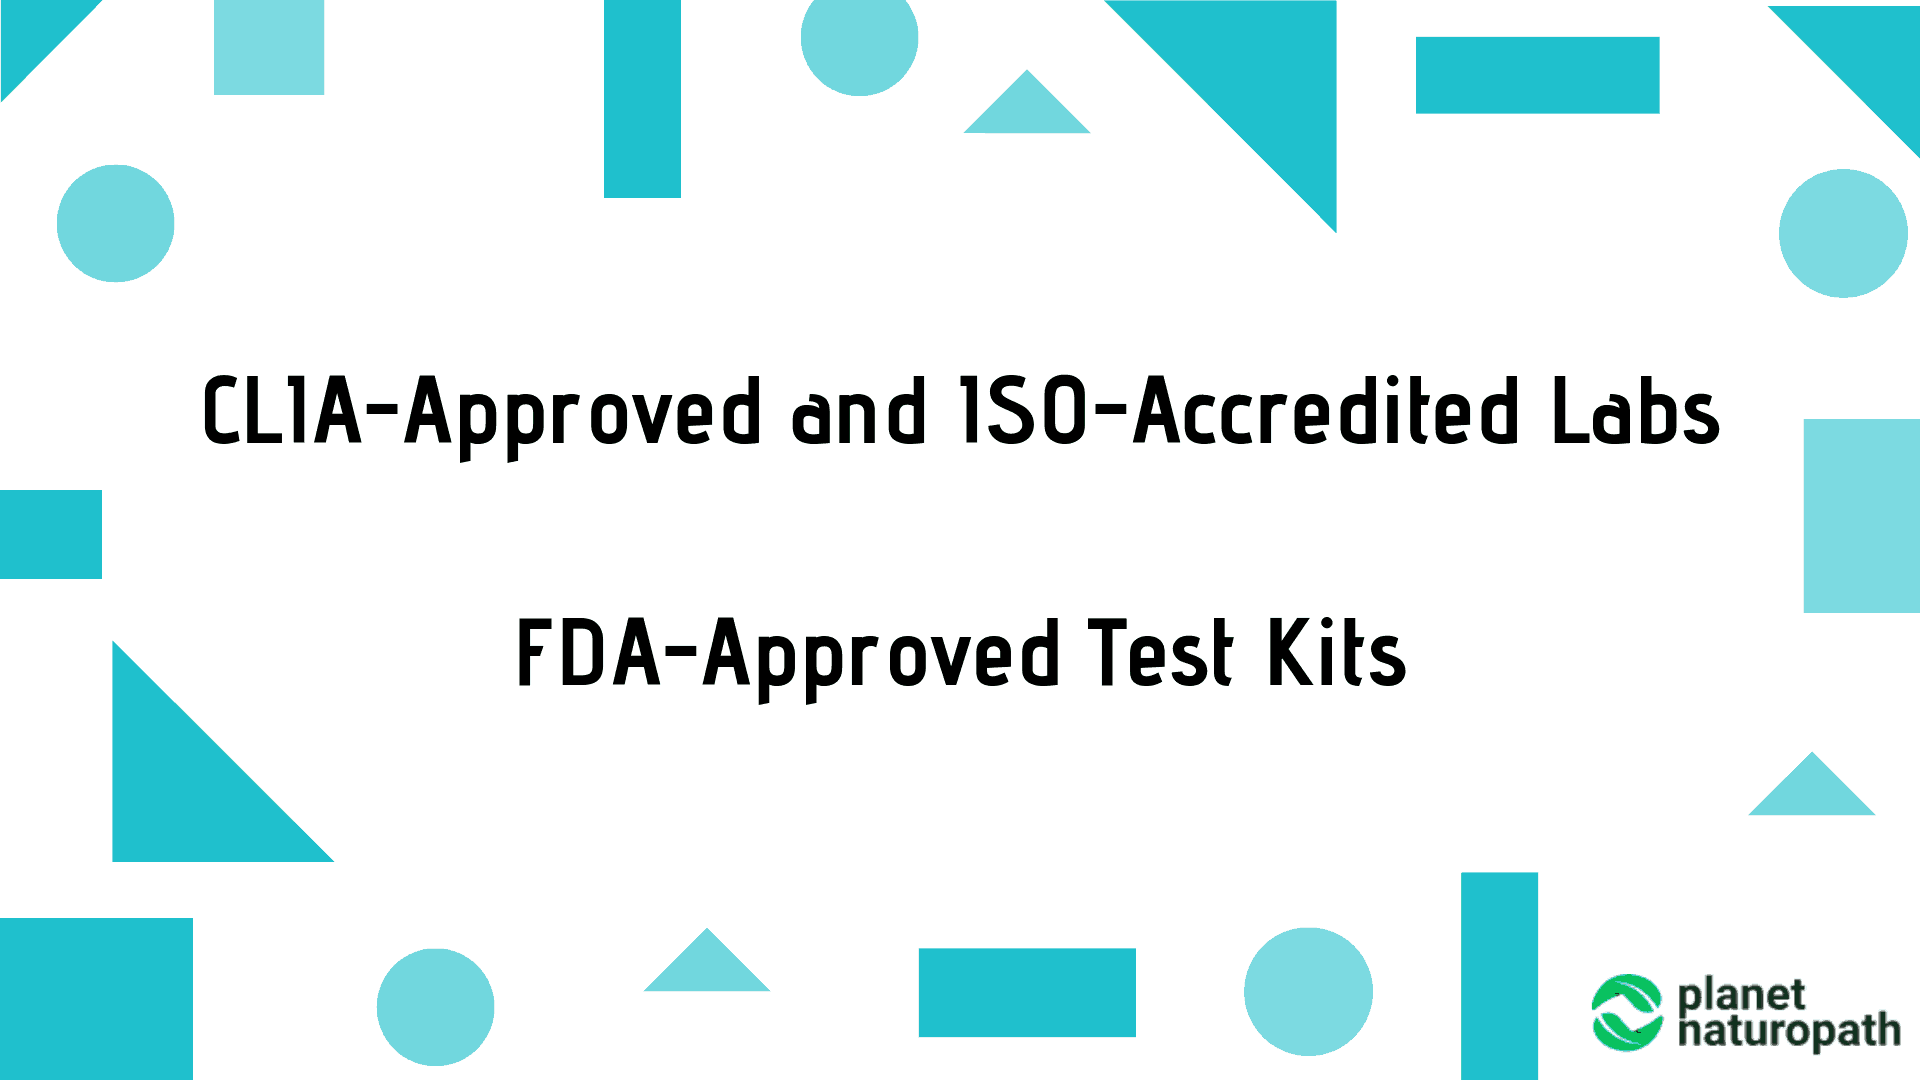 CLIA-approved-and-ISO-accredited-Labs-FDA-approved-tests